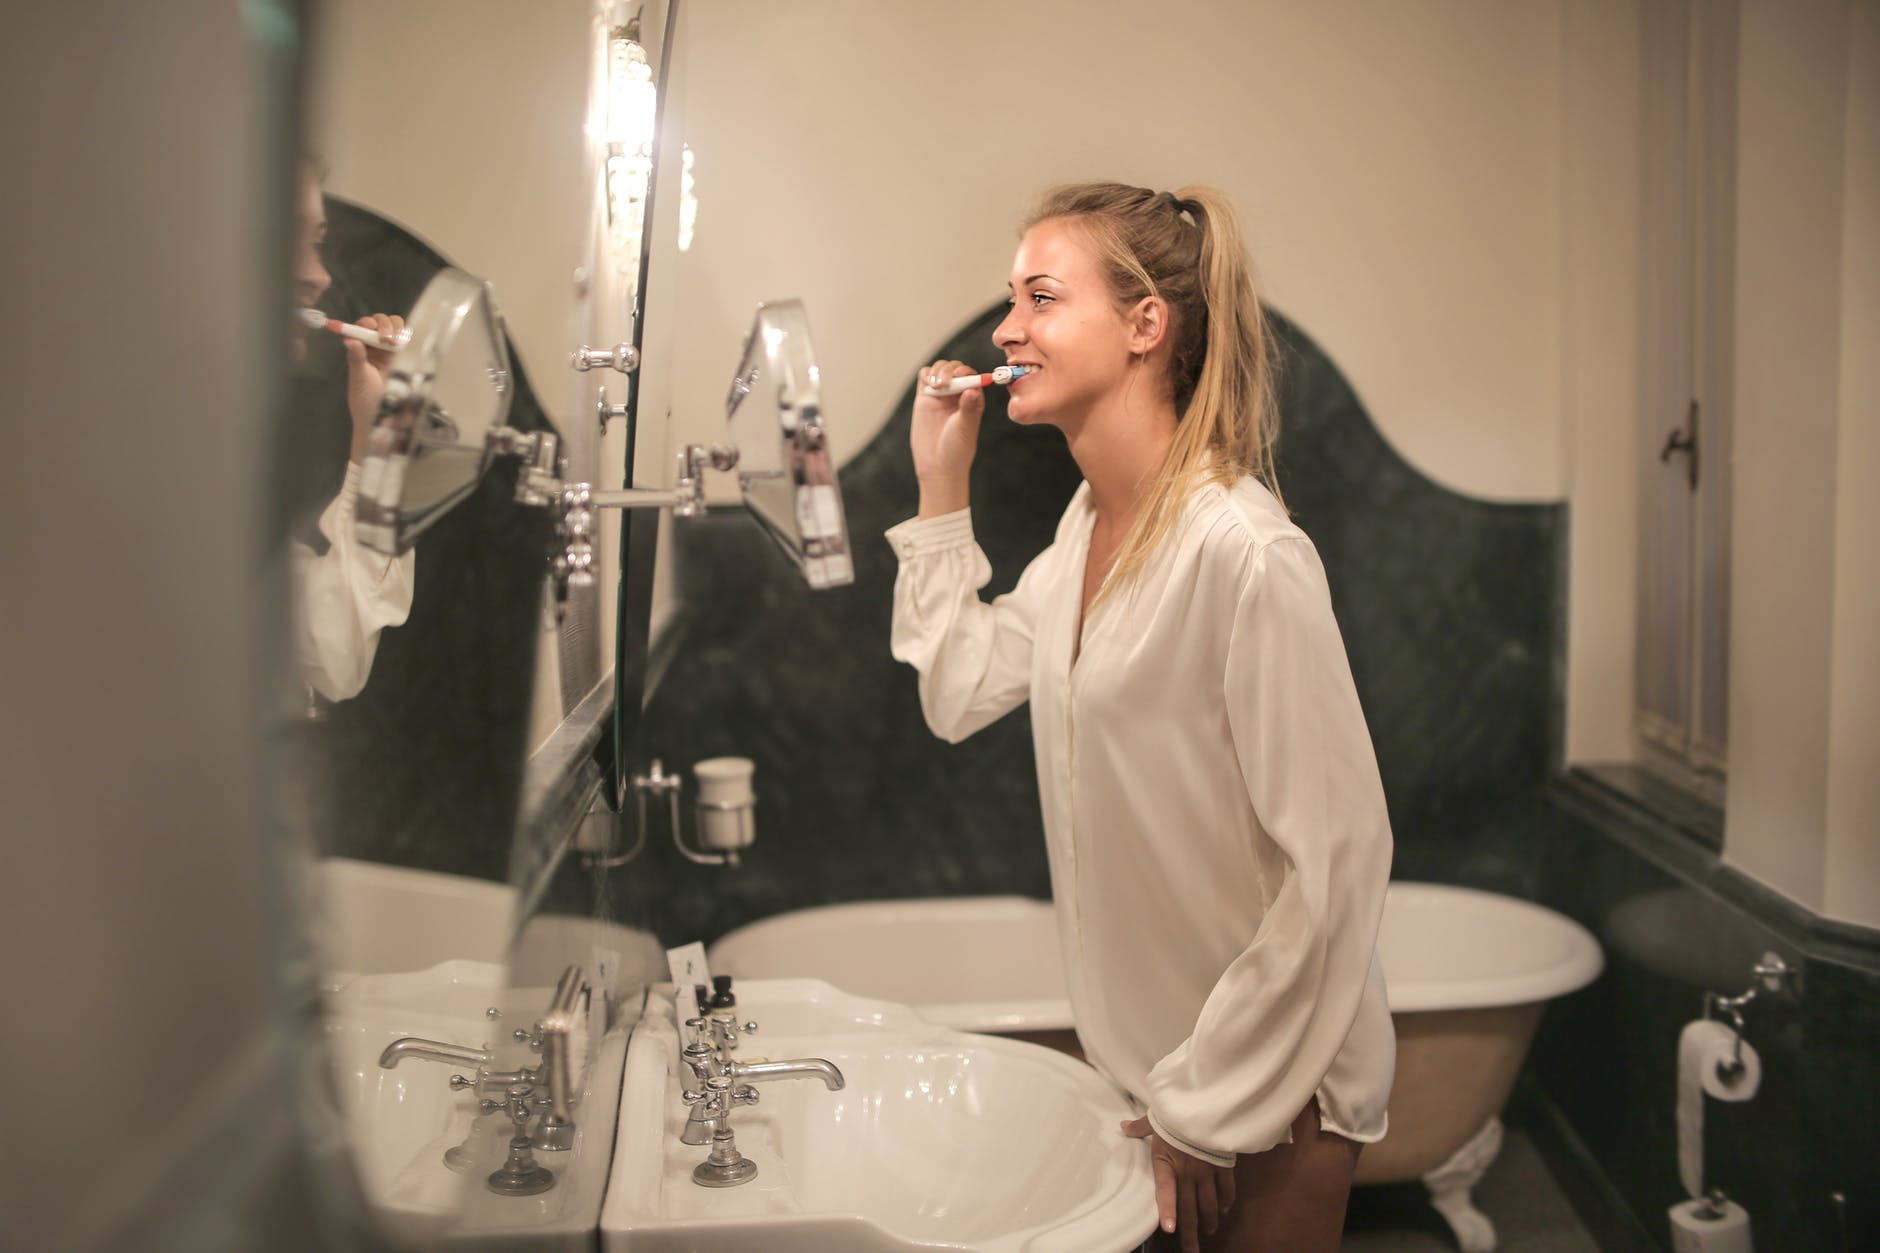 young woman cleaning teeth in bathroom